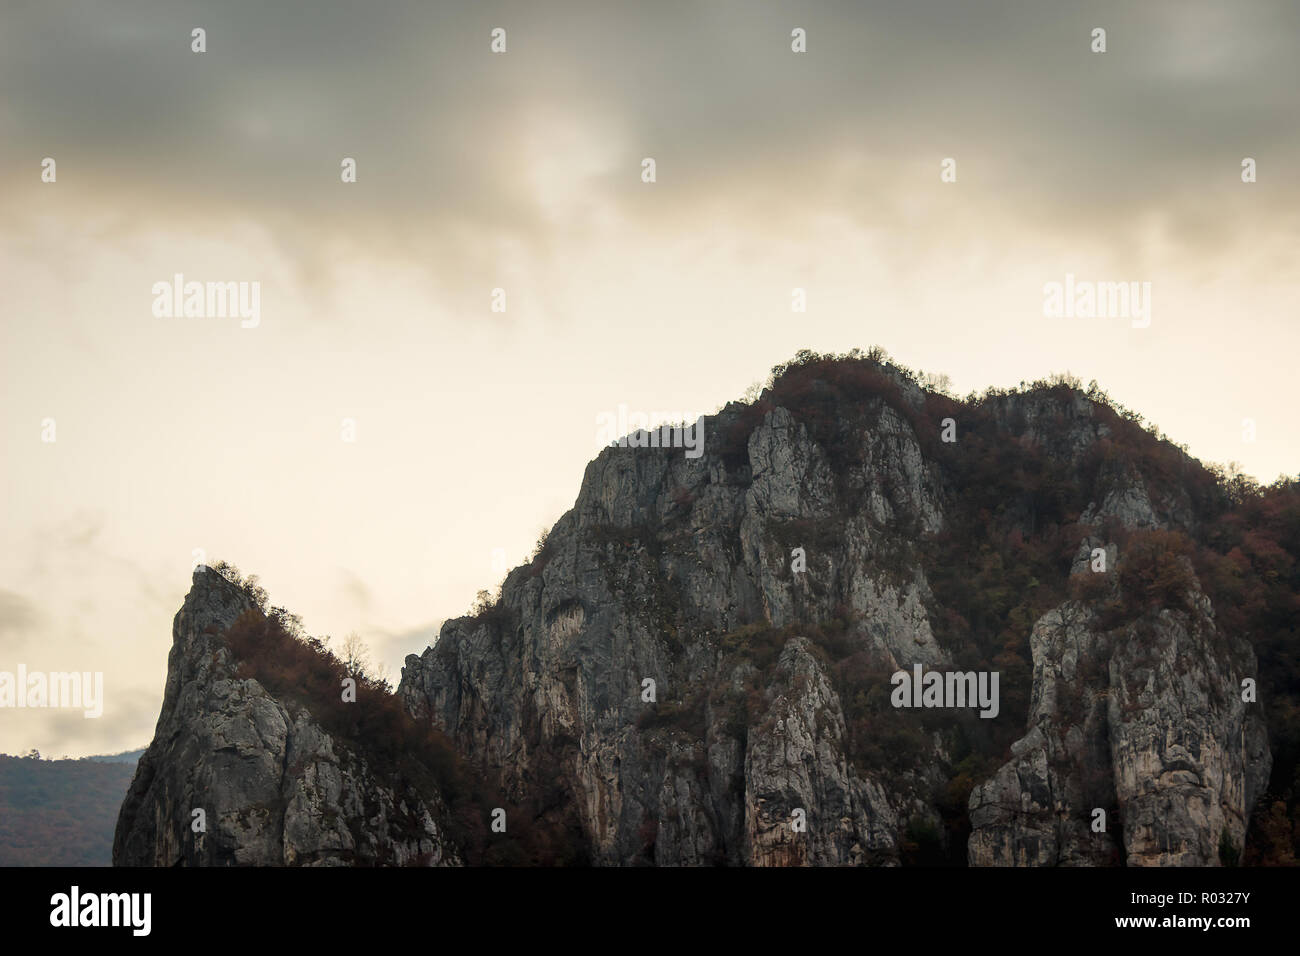 Moody view of iconic mountain over village Vlasi in Serbia, near Pirot, during twilight - Stock Image